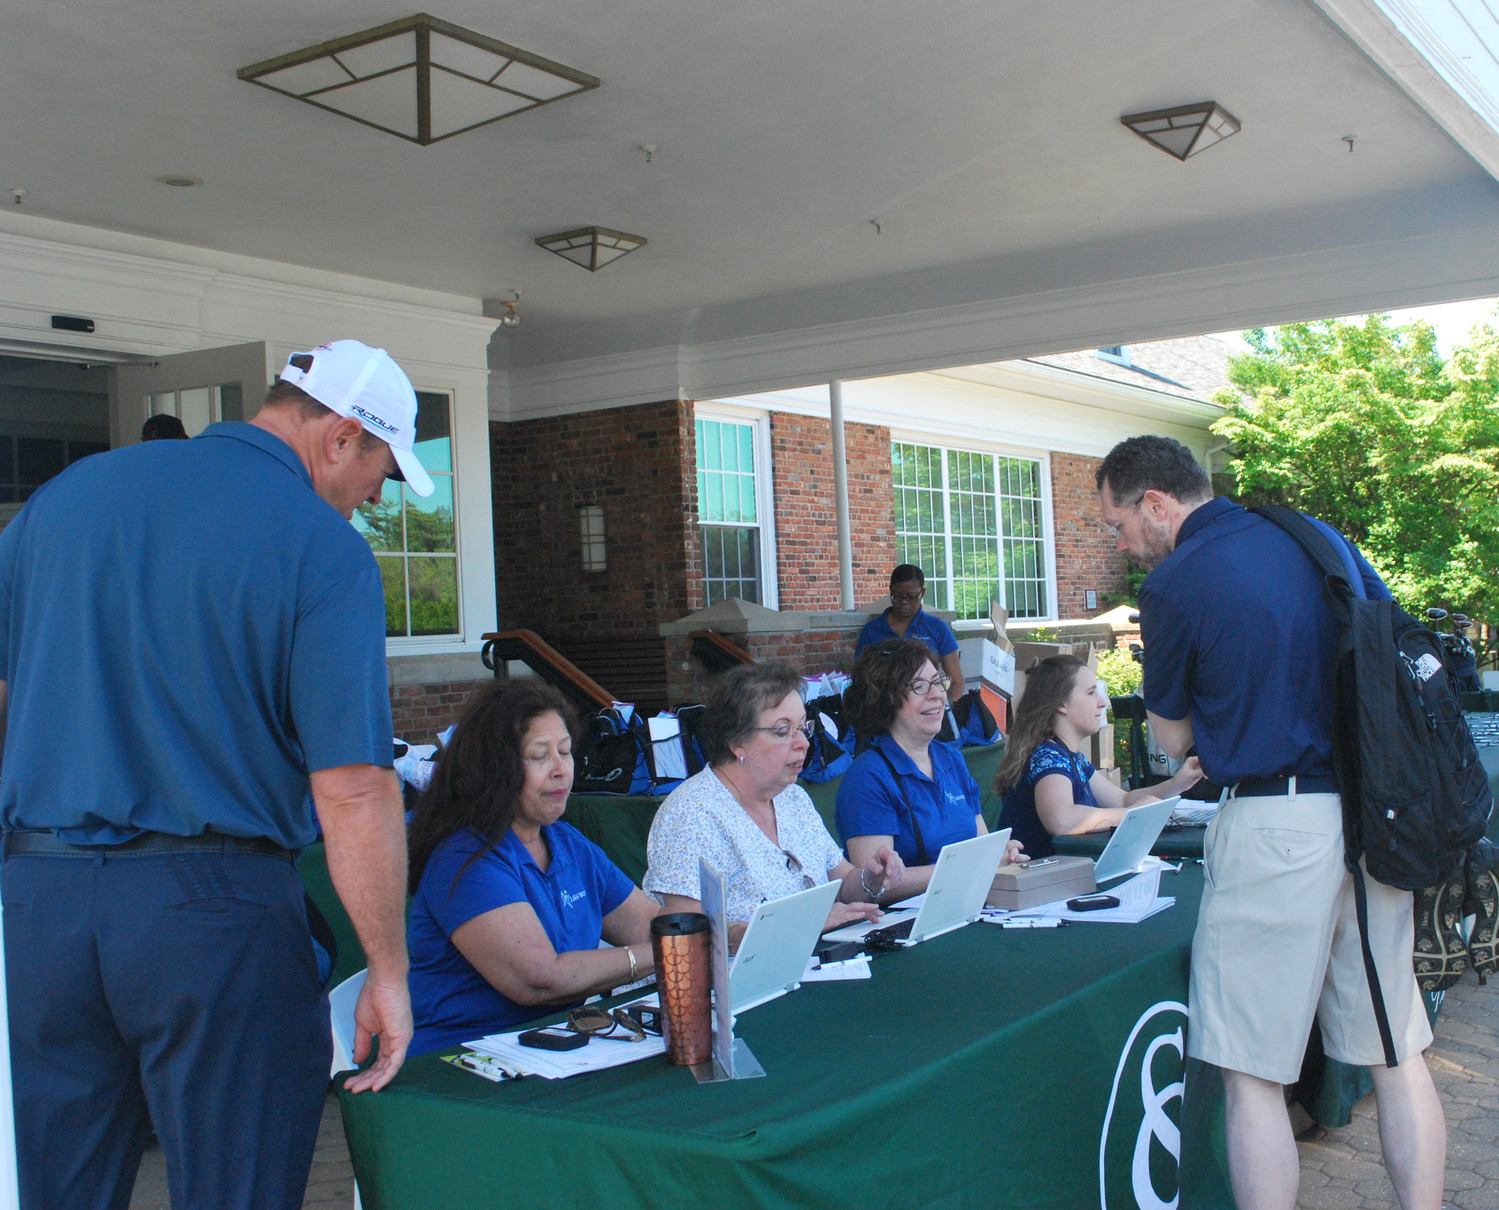 Check-in was busy as golfers arrived throughout the morning.